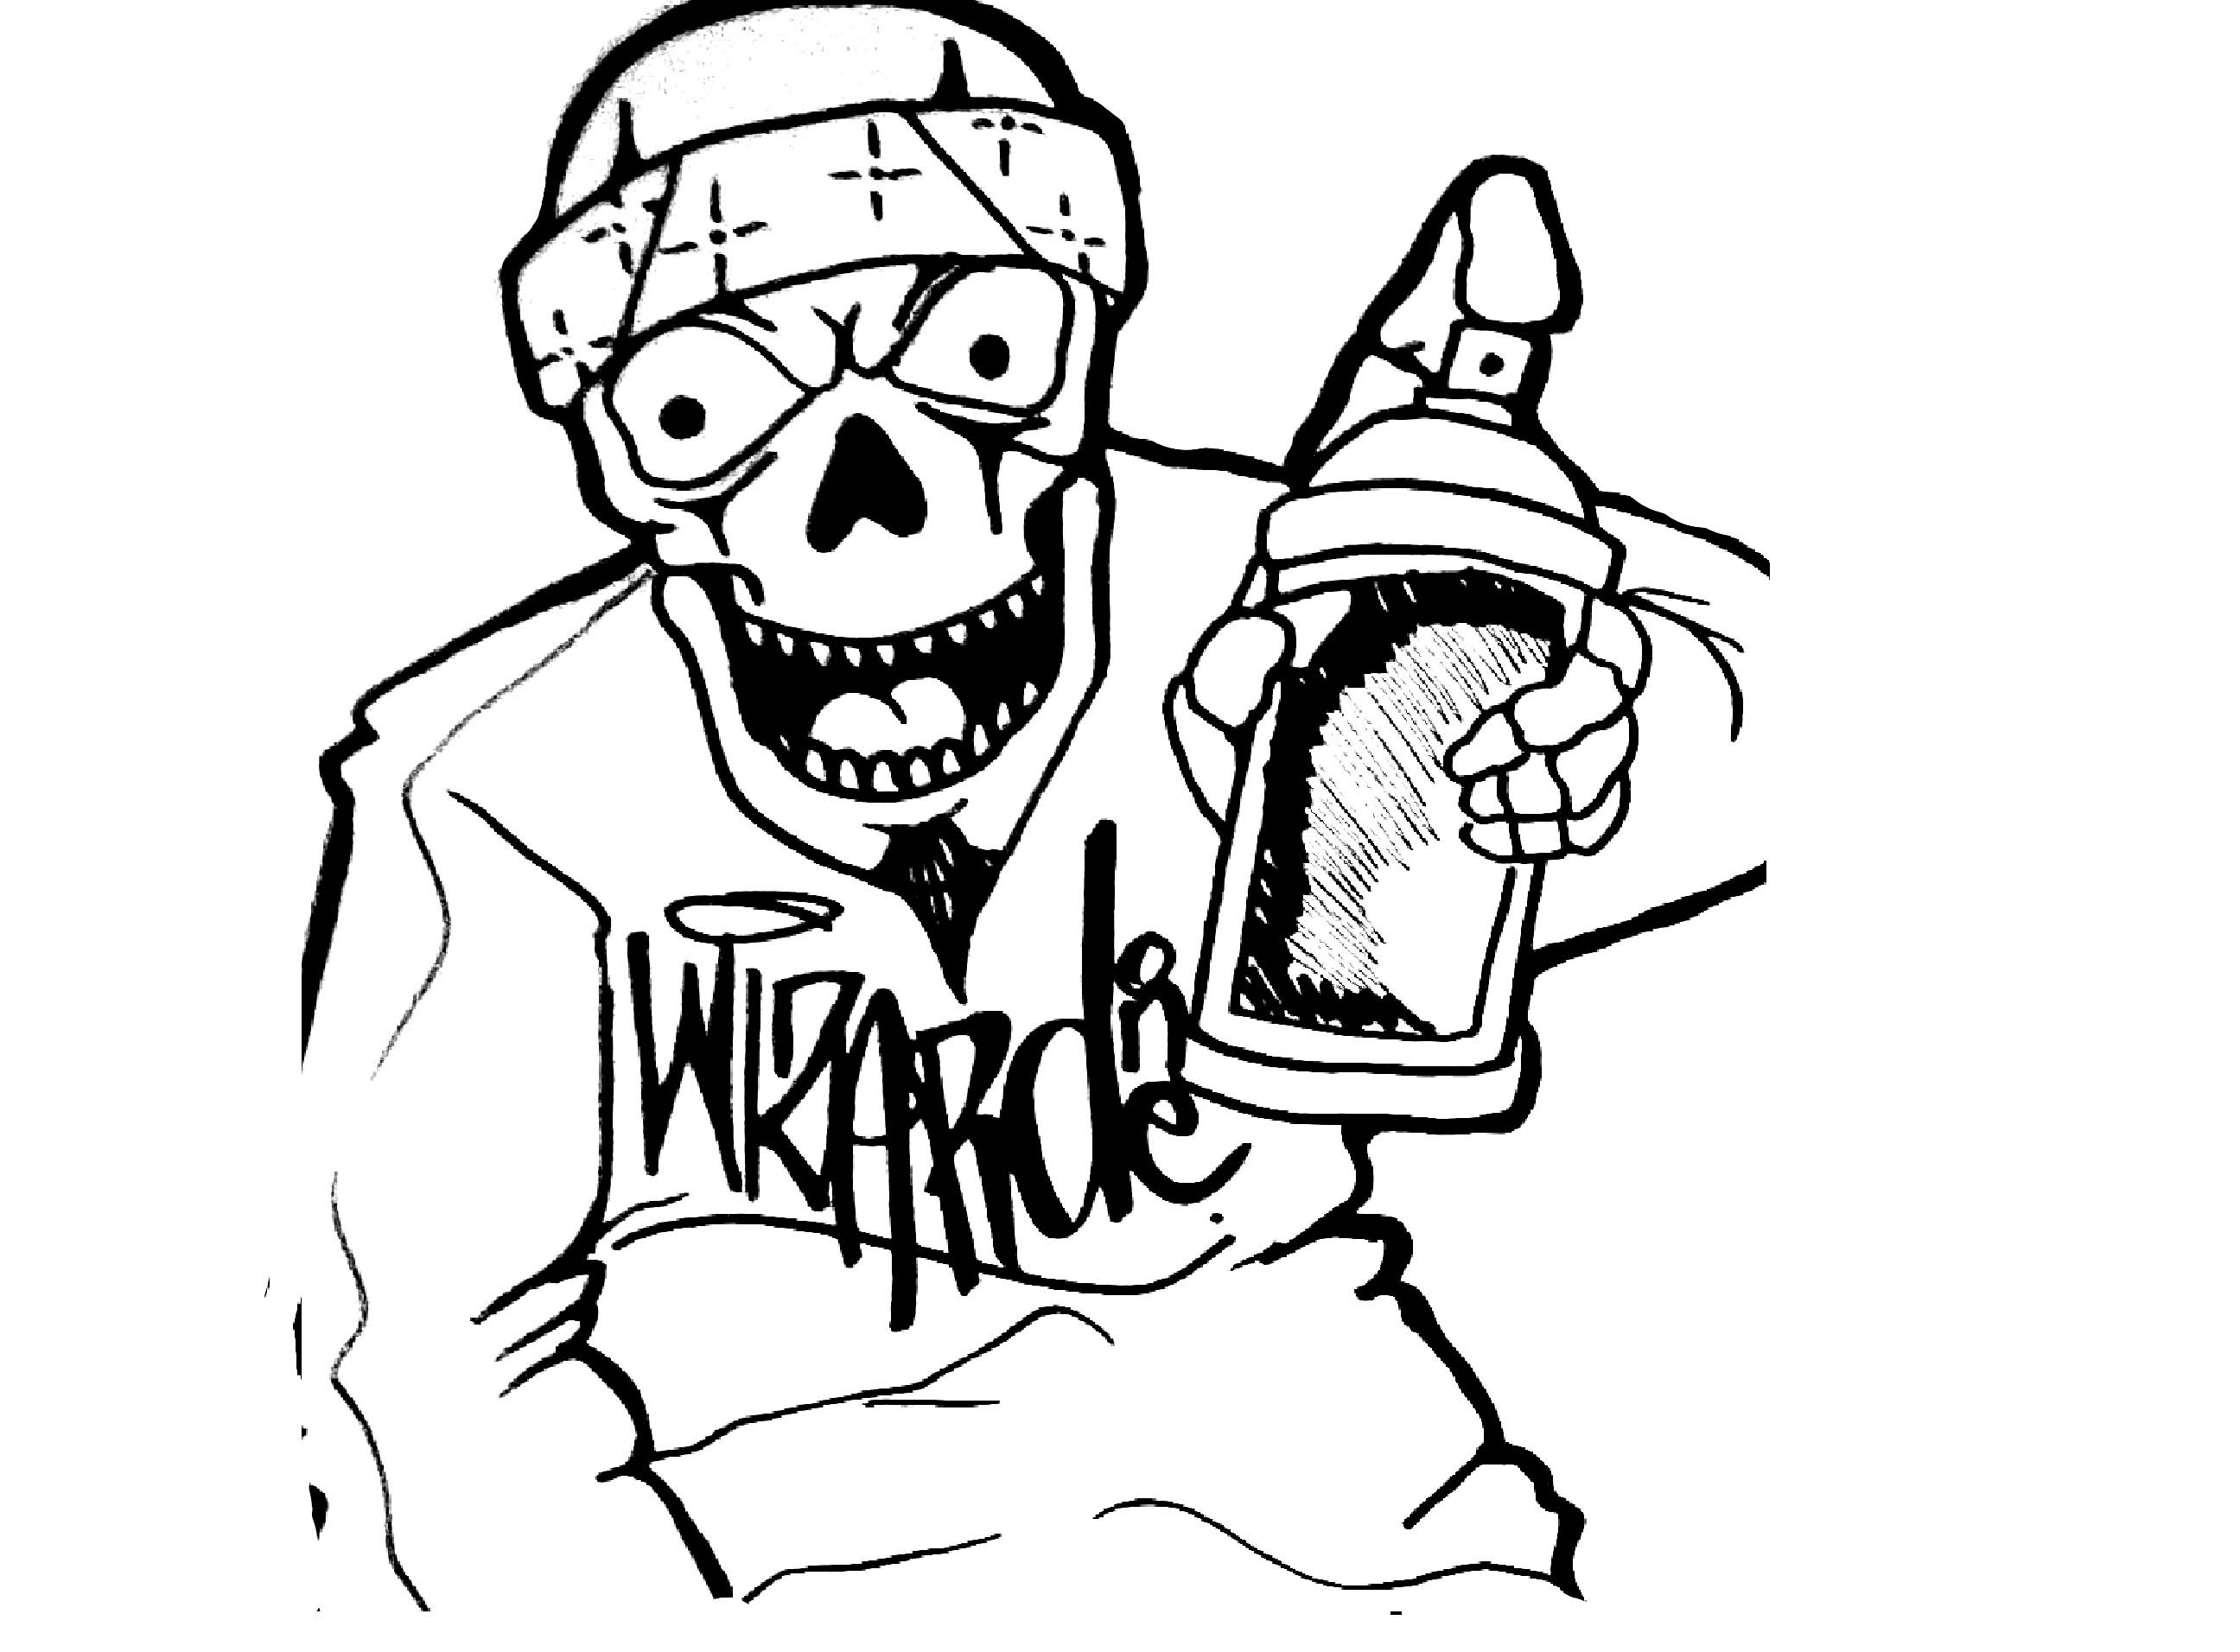 2592x1912 Graffiti Clowns Drawings And Sketches Drawing A Skull Clown (Speed